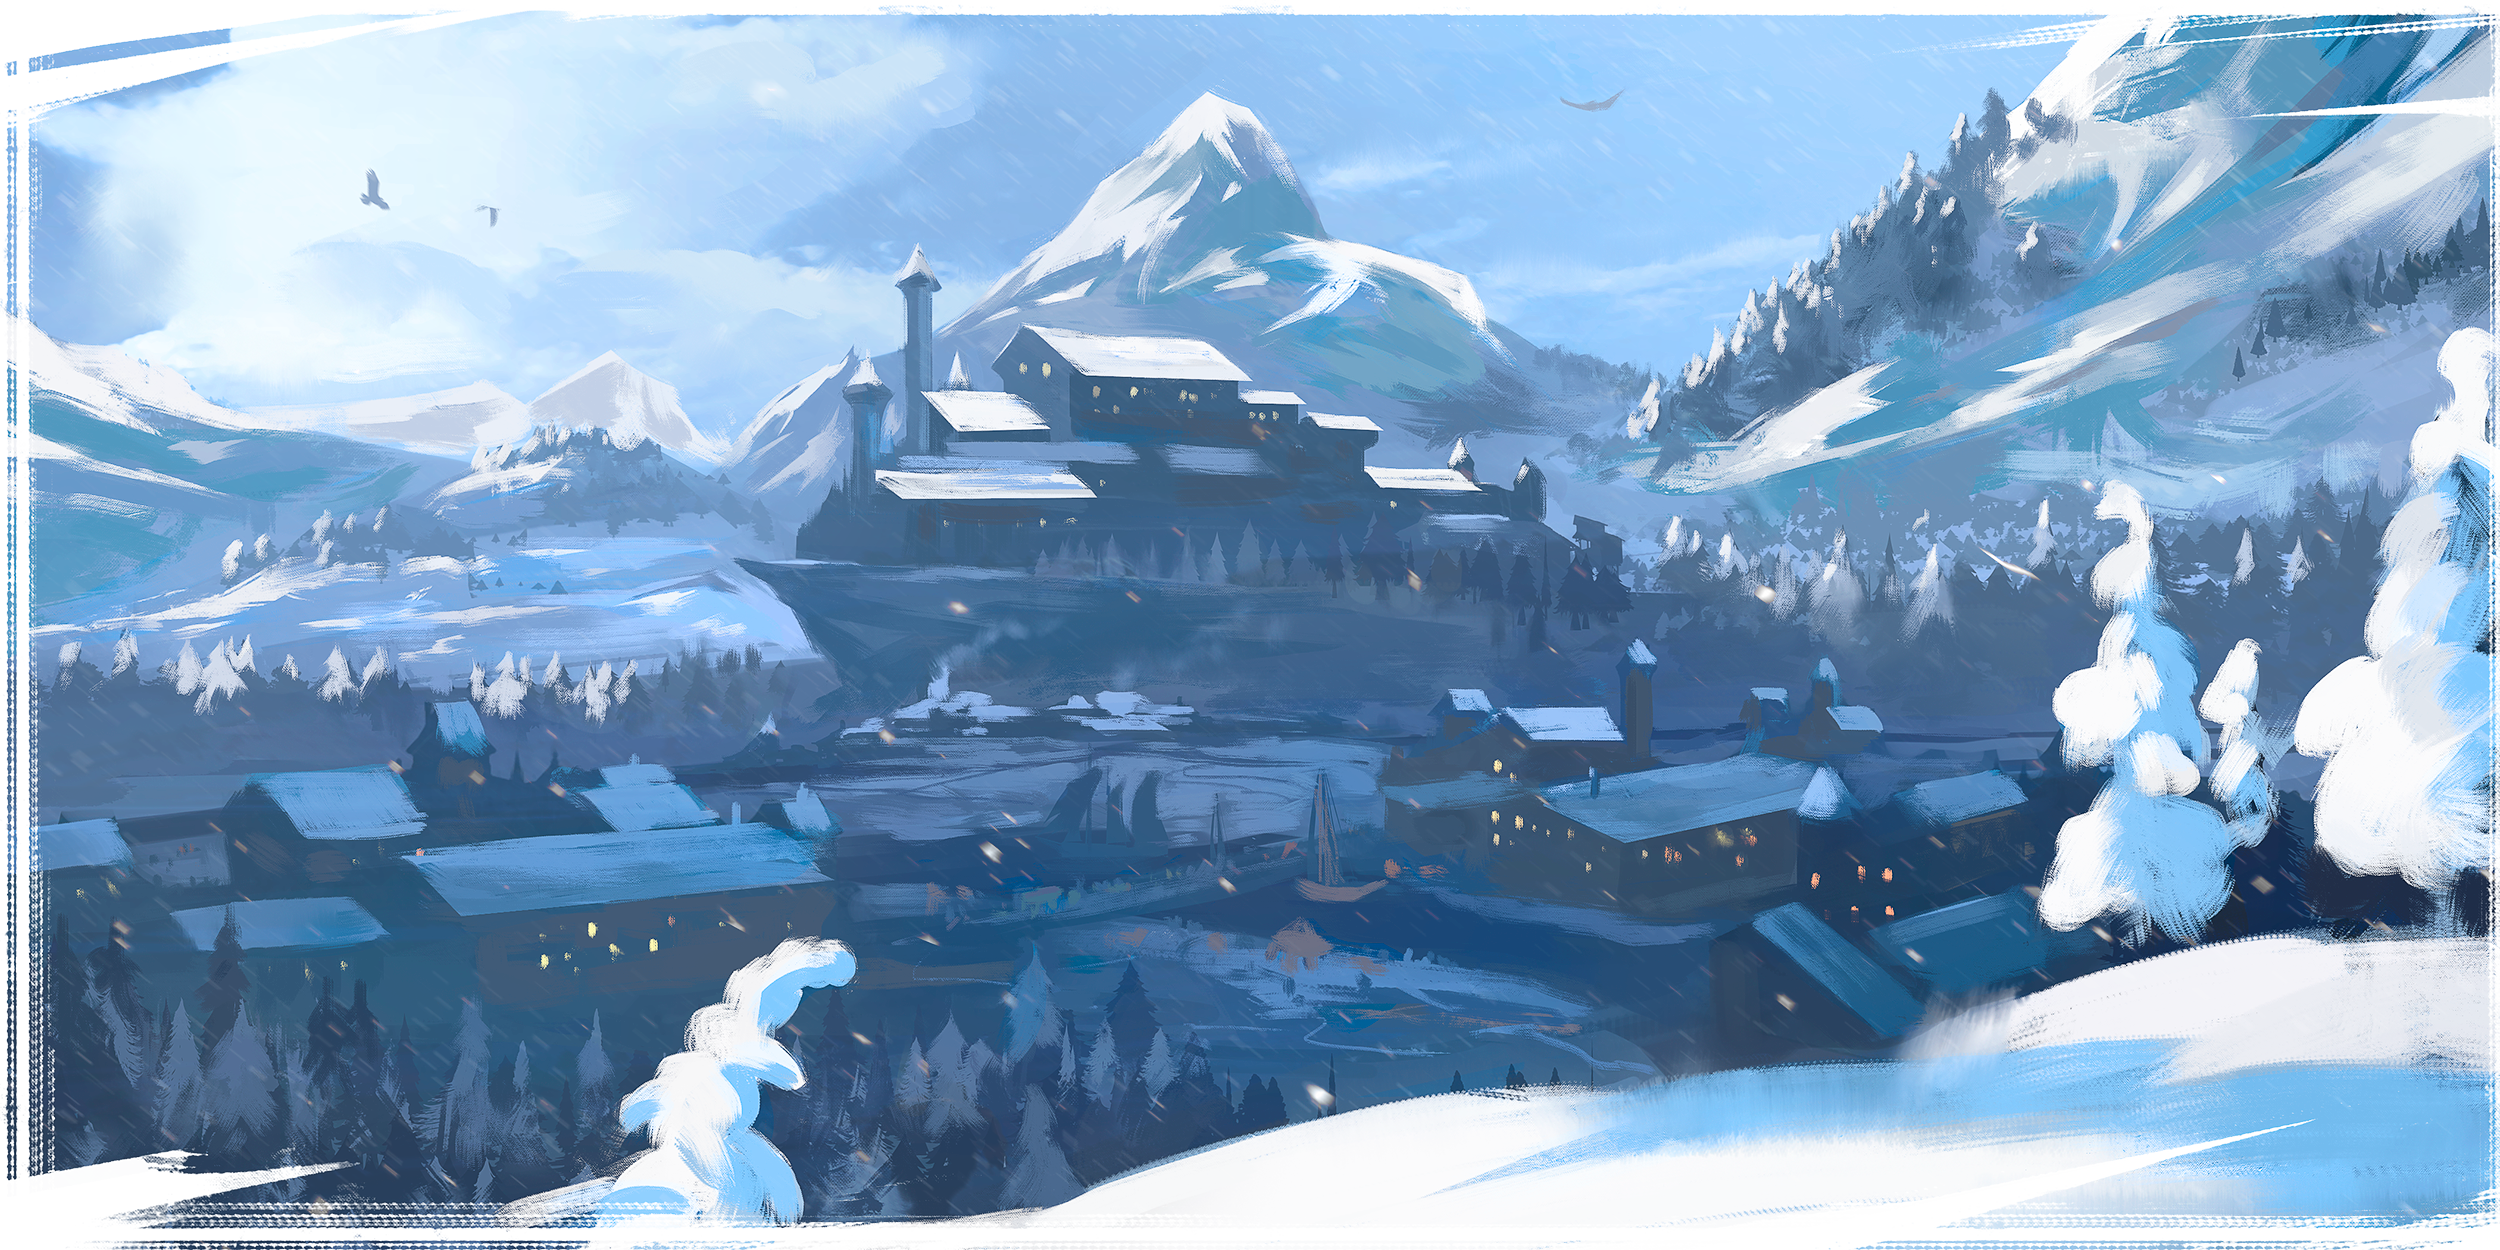 A scene of a frozen landscape within the Northern Realms